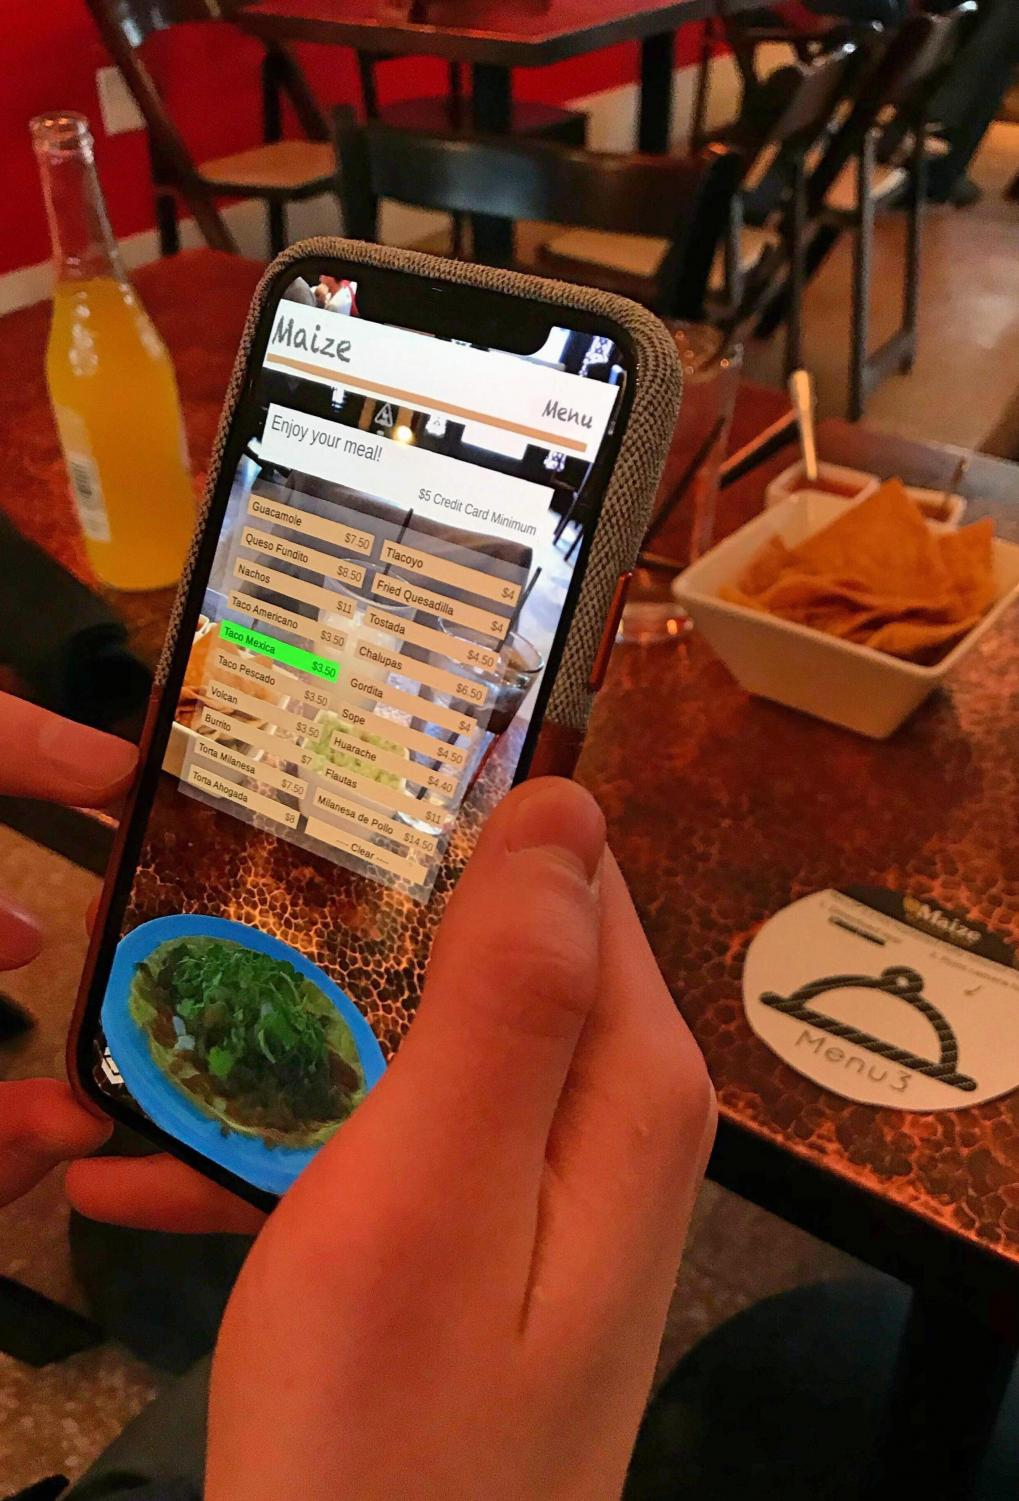 Menu3 is an app that allows diners to view menus from their phones. The app is being marketed to local restaurants.